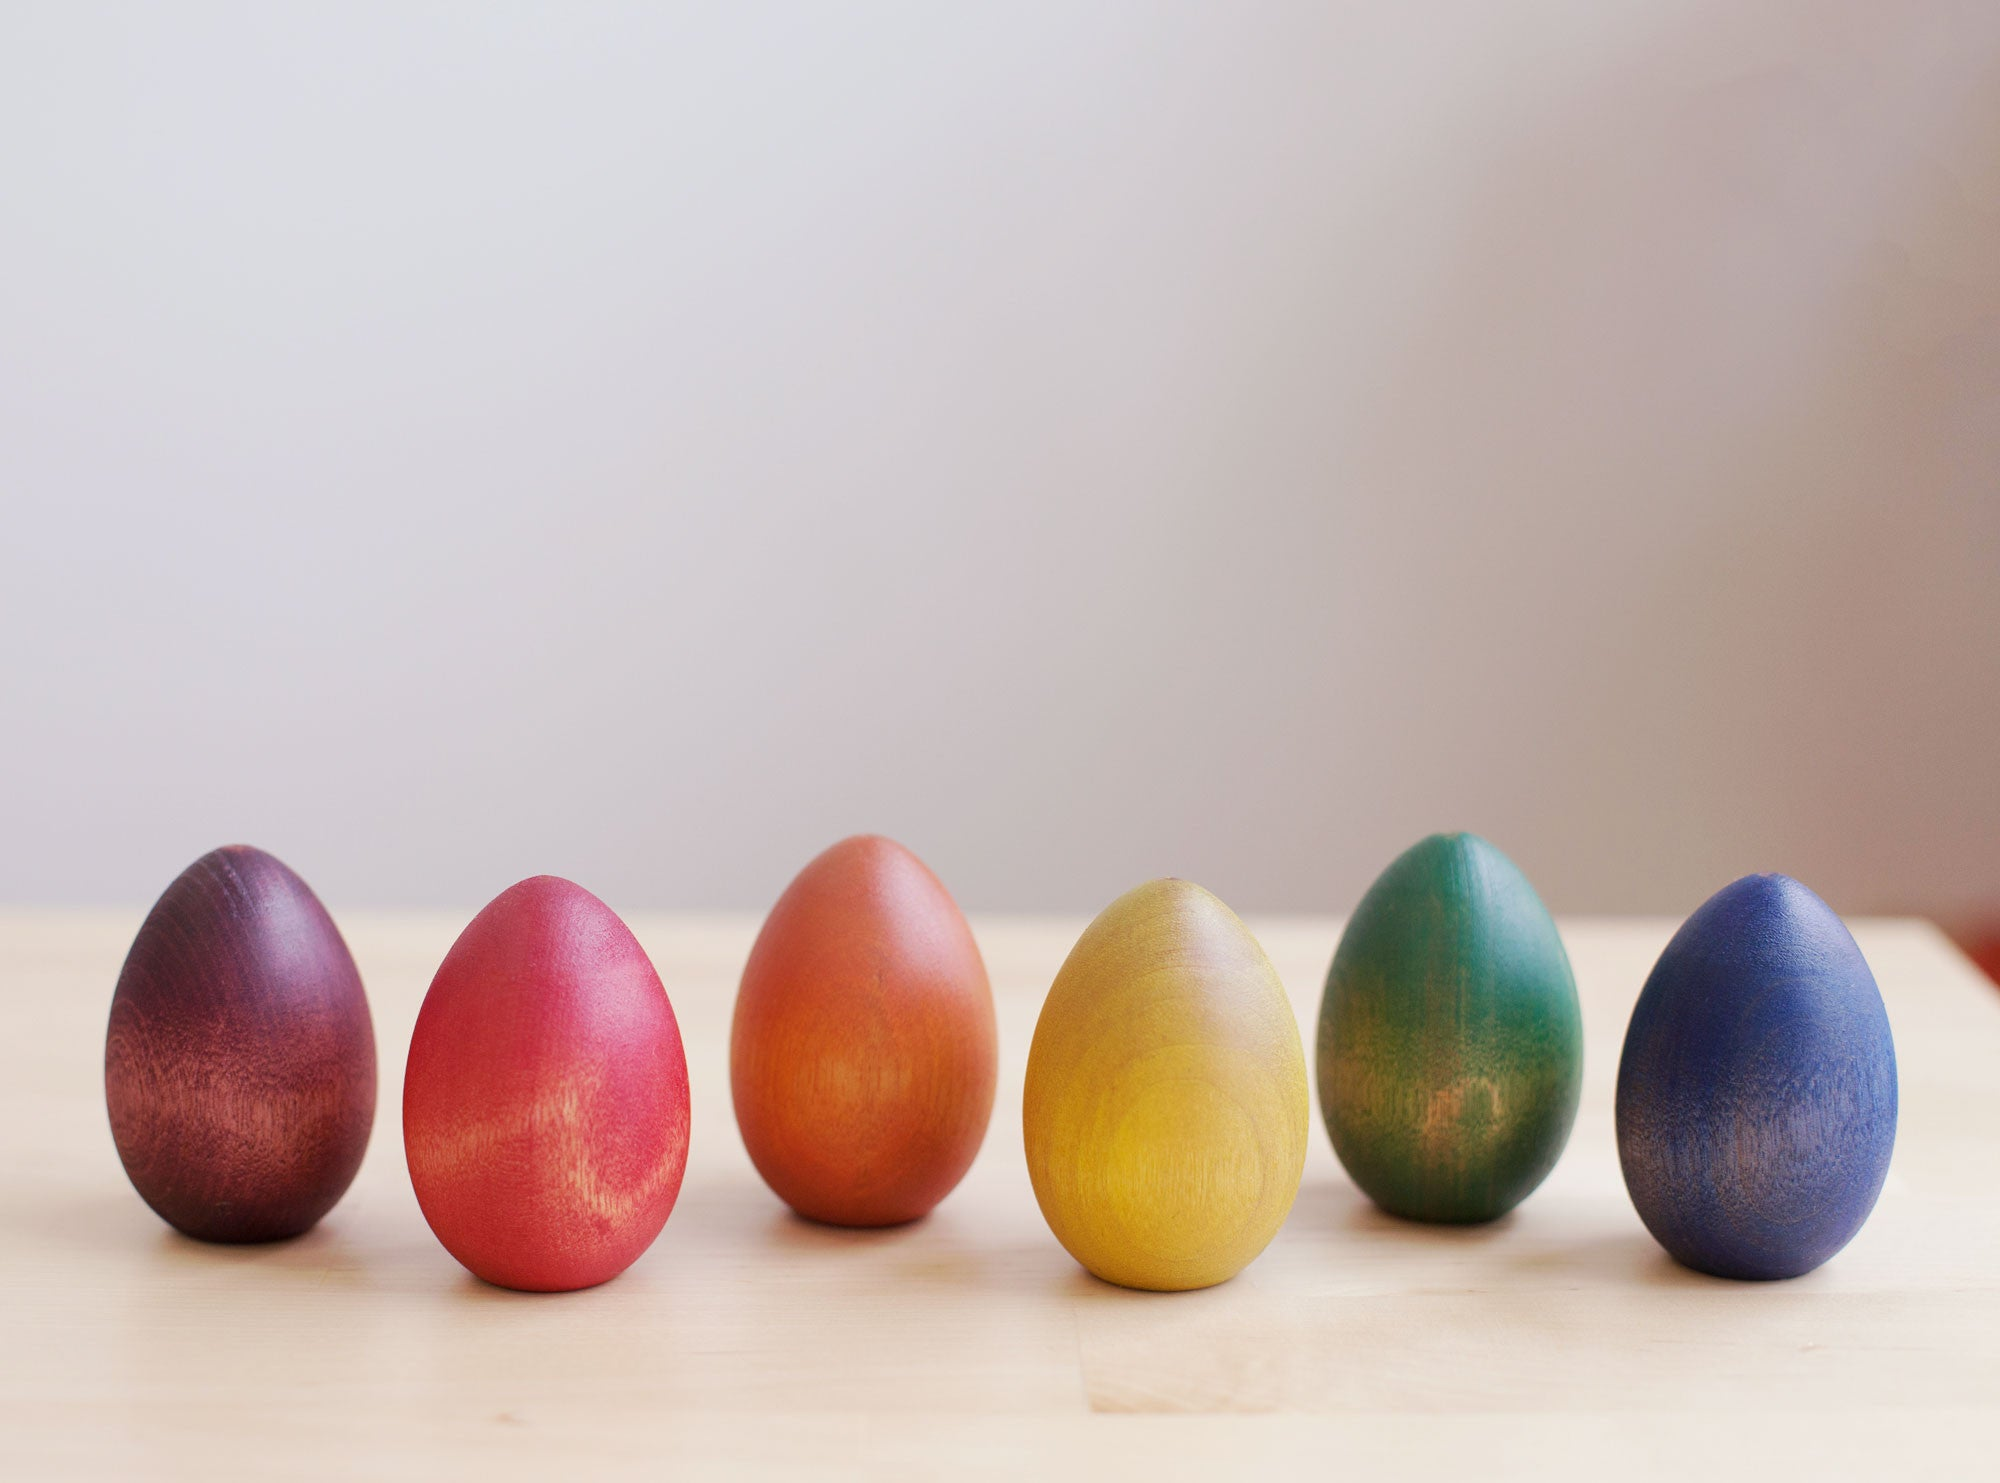 painted wooden eggs - nova natural toys & crafts